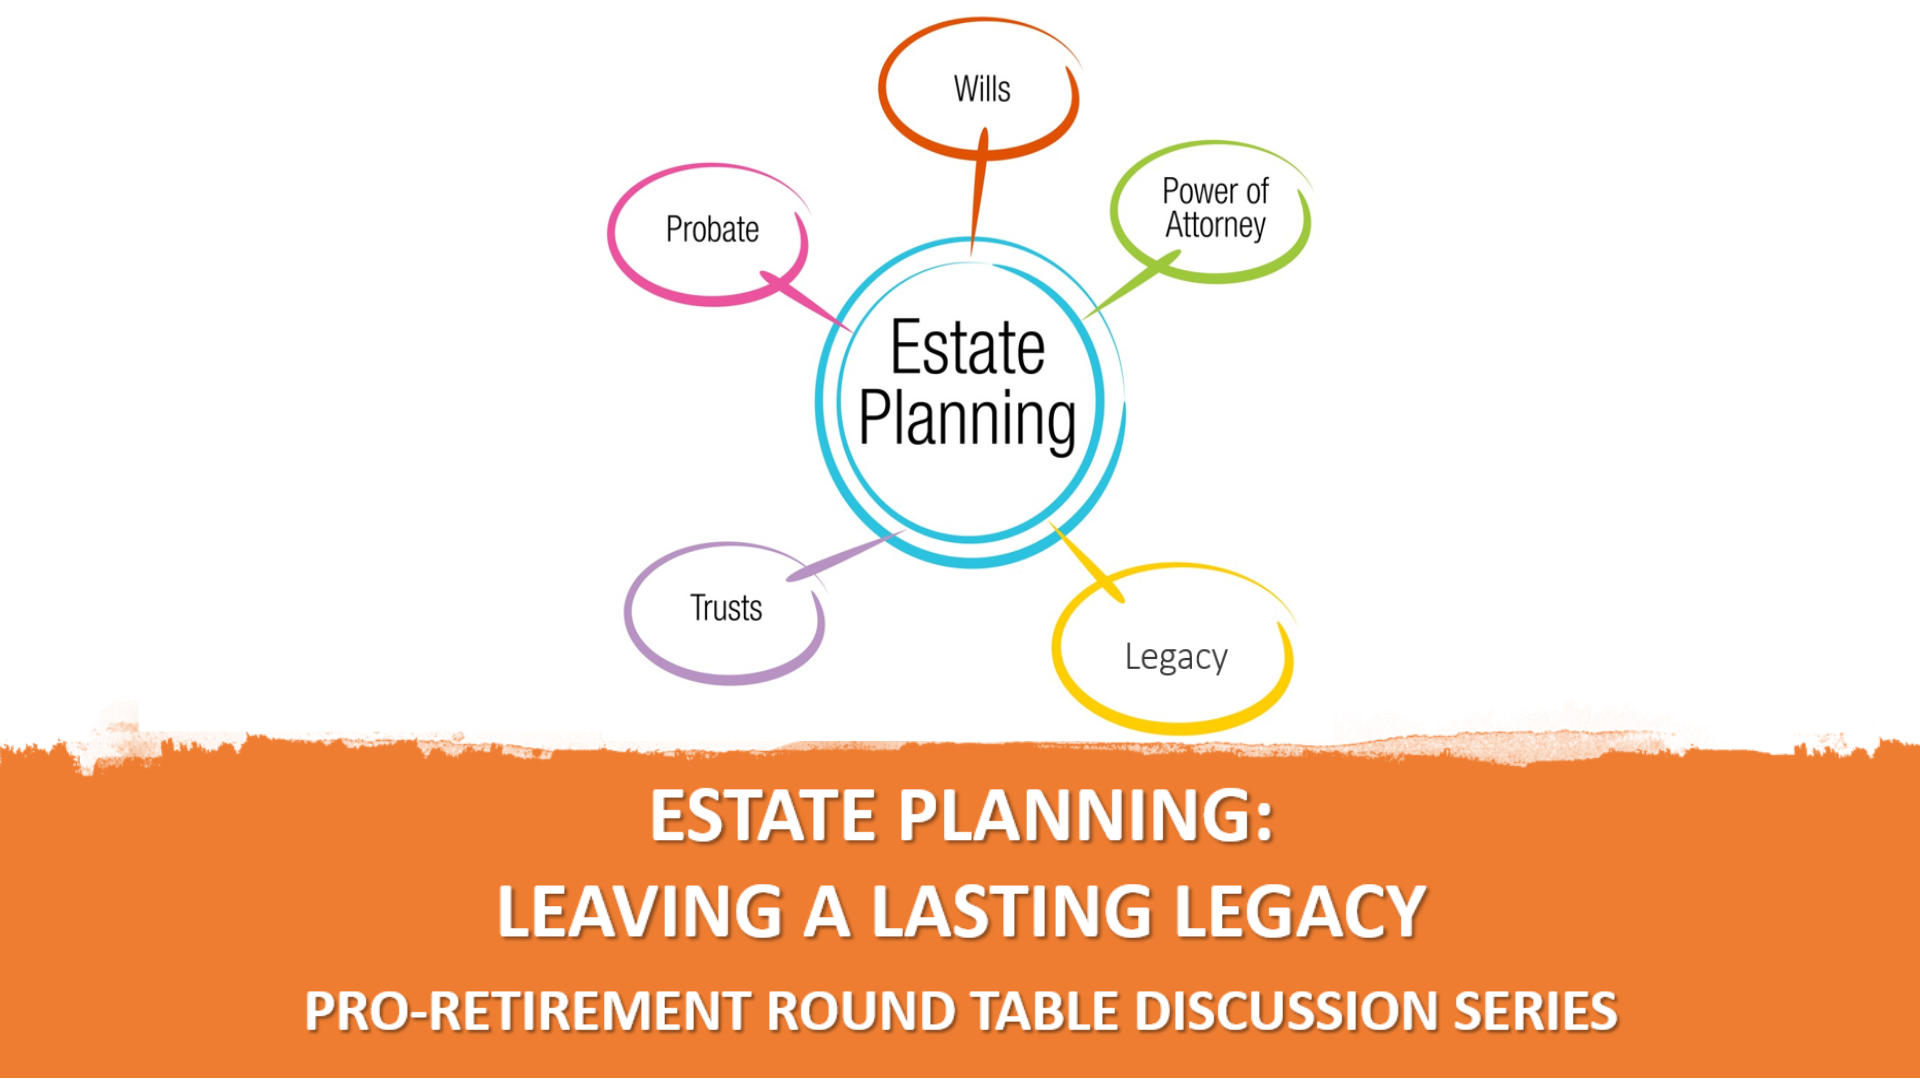 Leaving A Lasting Legacy by Estate Planning